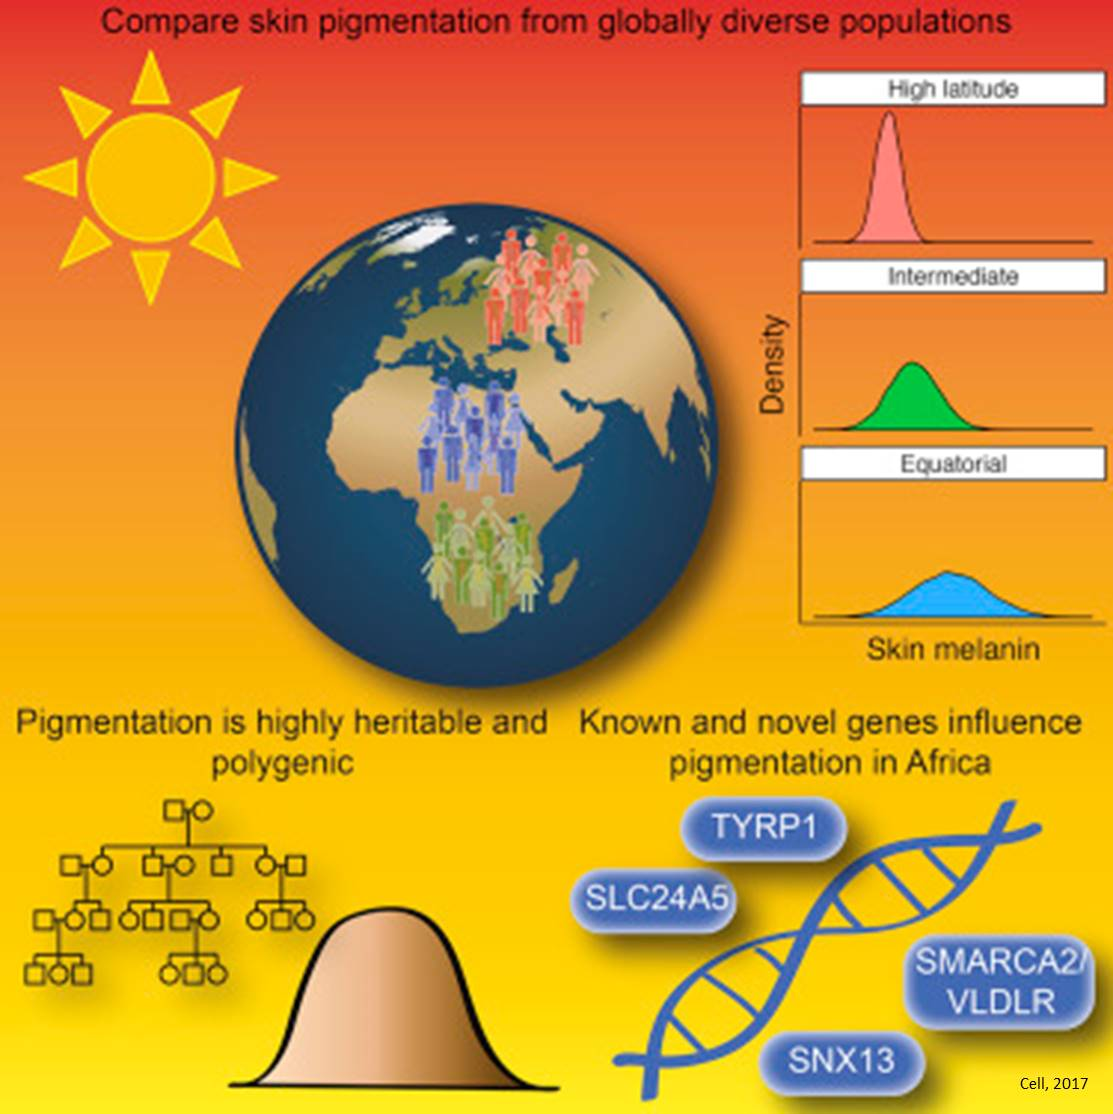 Skin pigmentation far more complex than previously known